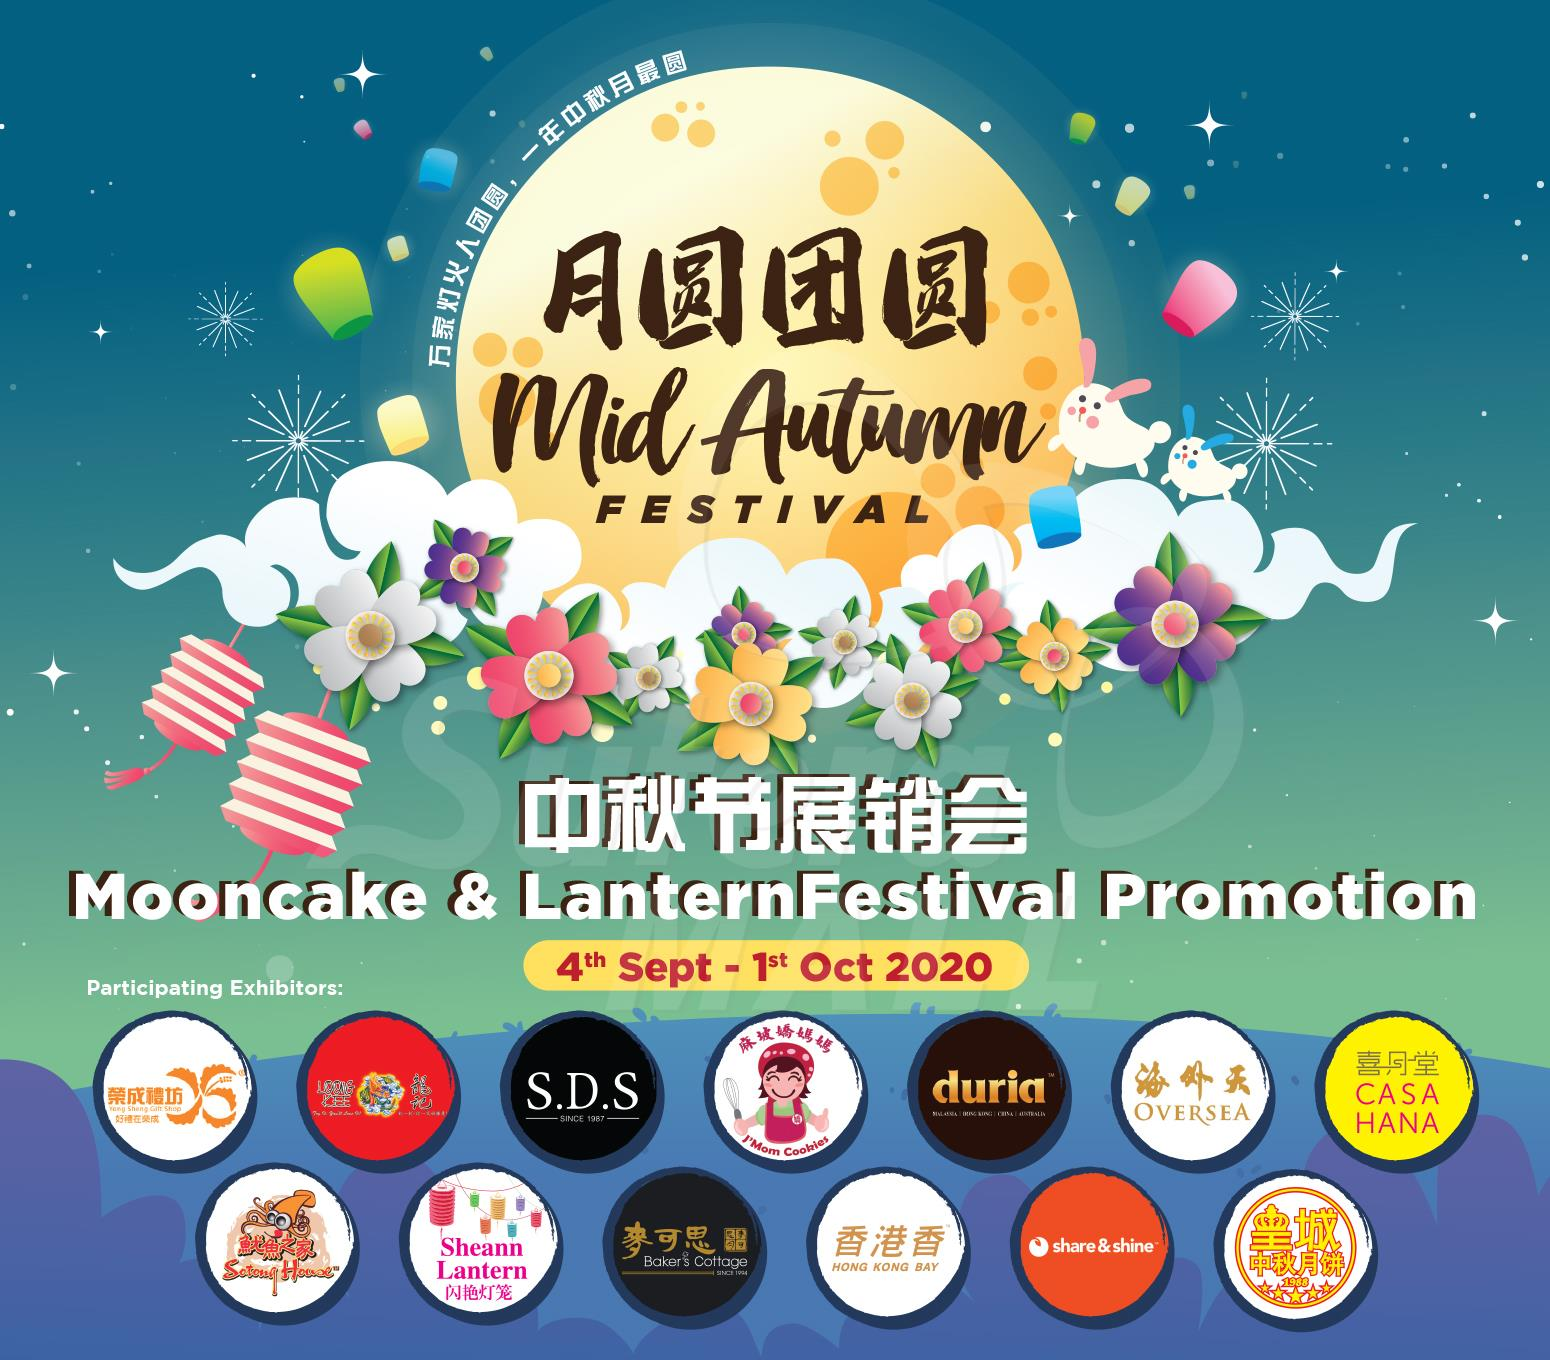 <div class='event-date'>04 Sep 2020 to 01 Oct 2020</div><div class='event-title'><h4>Mooncake Promotion 2020</h4></div>